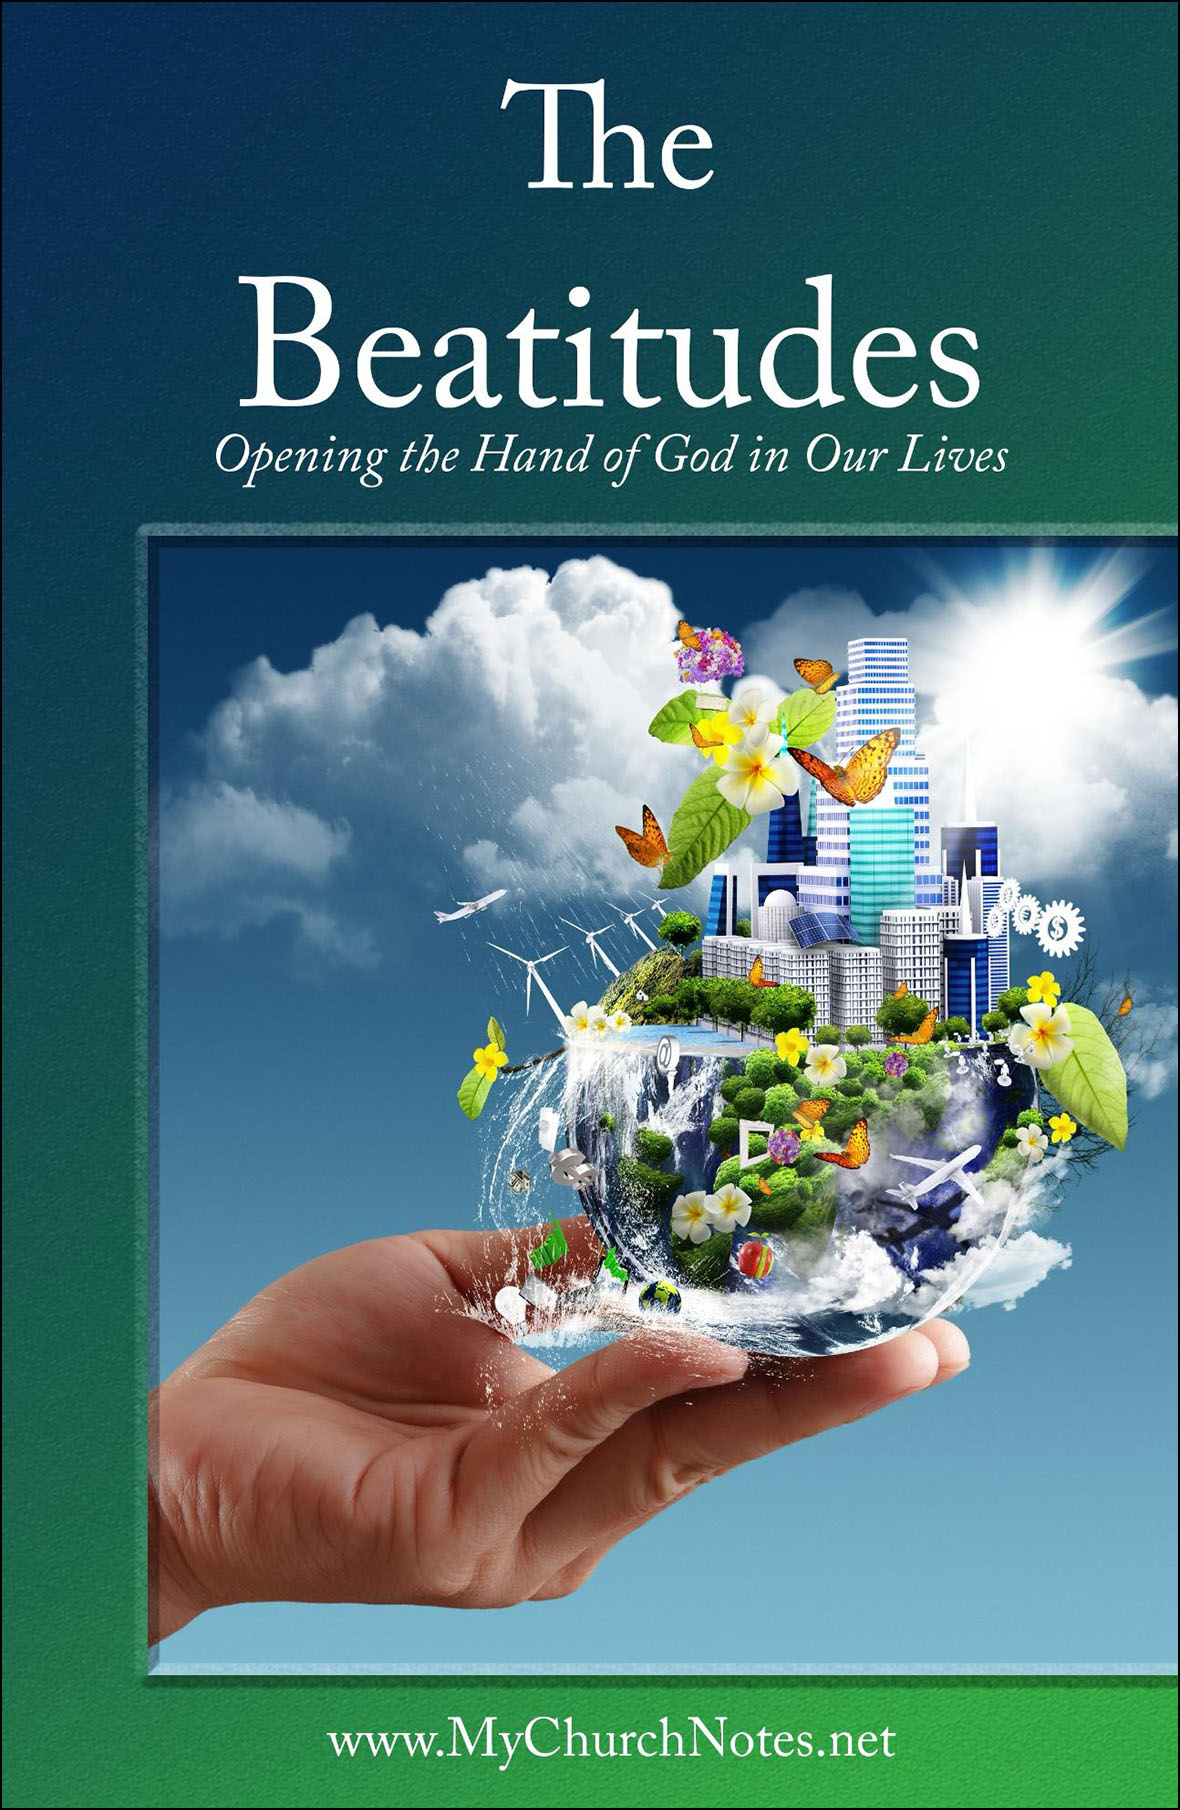 The Beatitudes Find Cover for web insertion